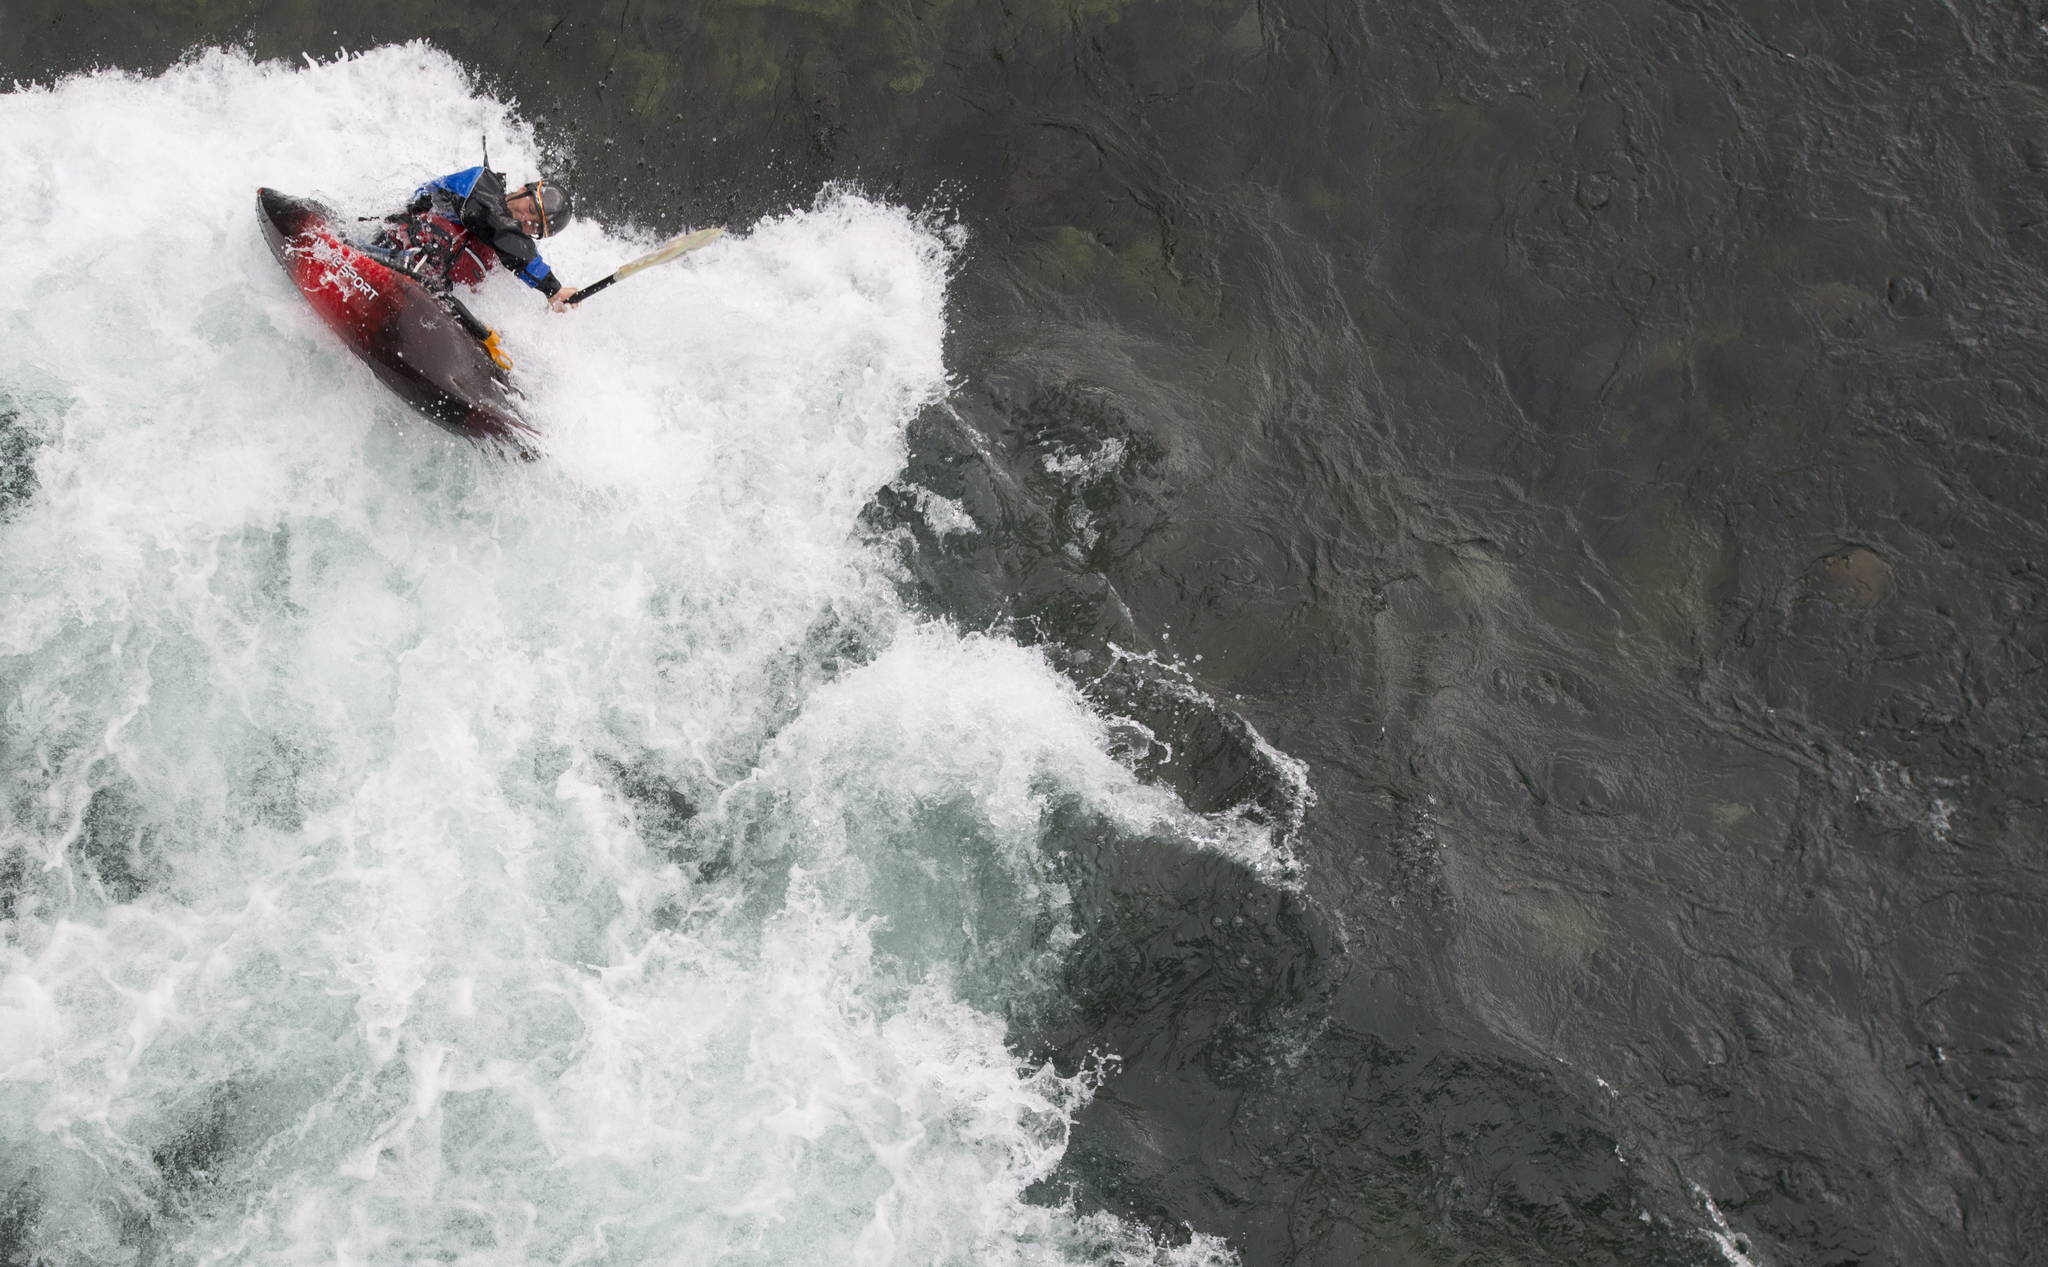 A whitewater kayaker does a roll as he paddles on the Yukon River in Whitehorse, YK, Friday, July, 22, 2016. THE CANADIAN PRESS/Jonathan Hayward